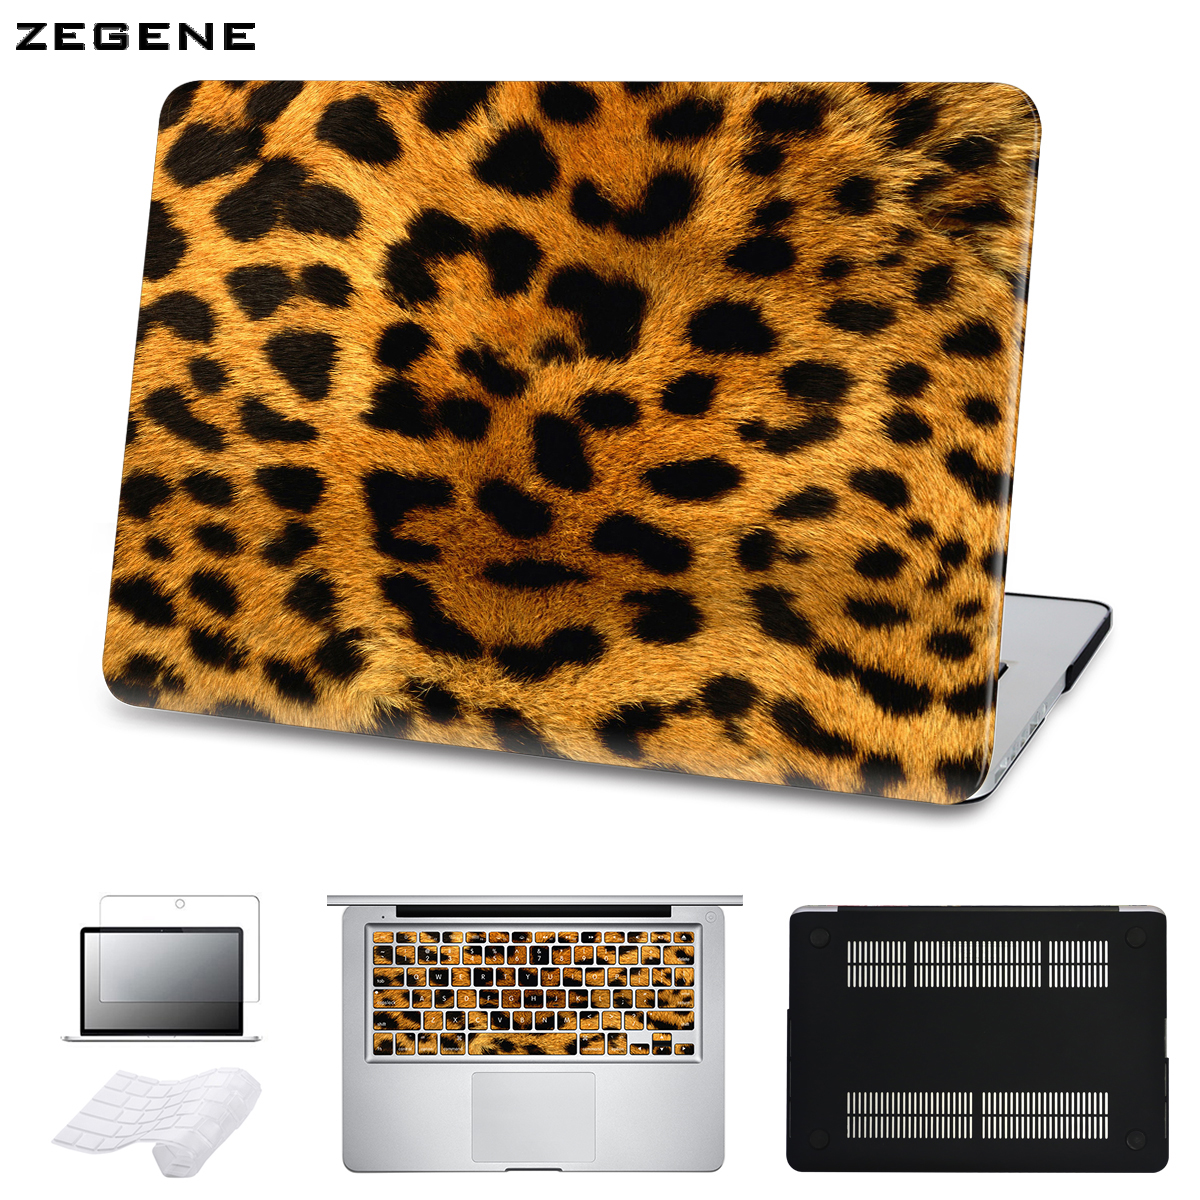 5 in 1 Bundle Leopard Cover Case For Apple Macbook Air Pro Retina 11 12 13 15 inch Hard Shell Laptop Bag With Keyboard Sticker 2017 newest hot sleeve case bag for macbook laptop air 11 12 13 pro retina 13 3 protecter wholesales drop free shipping